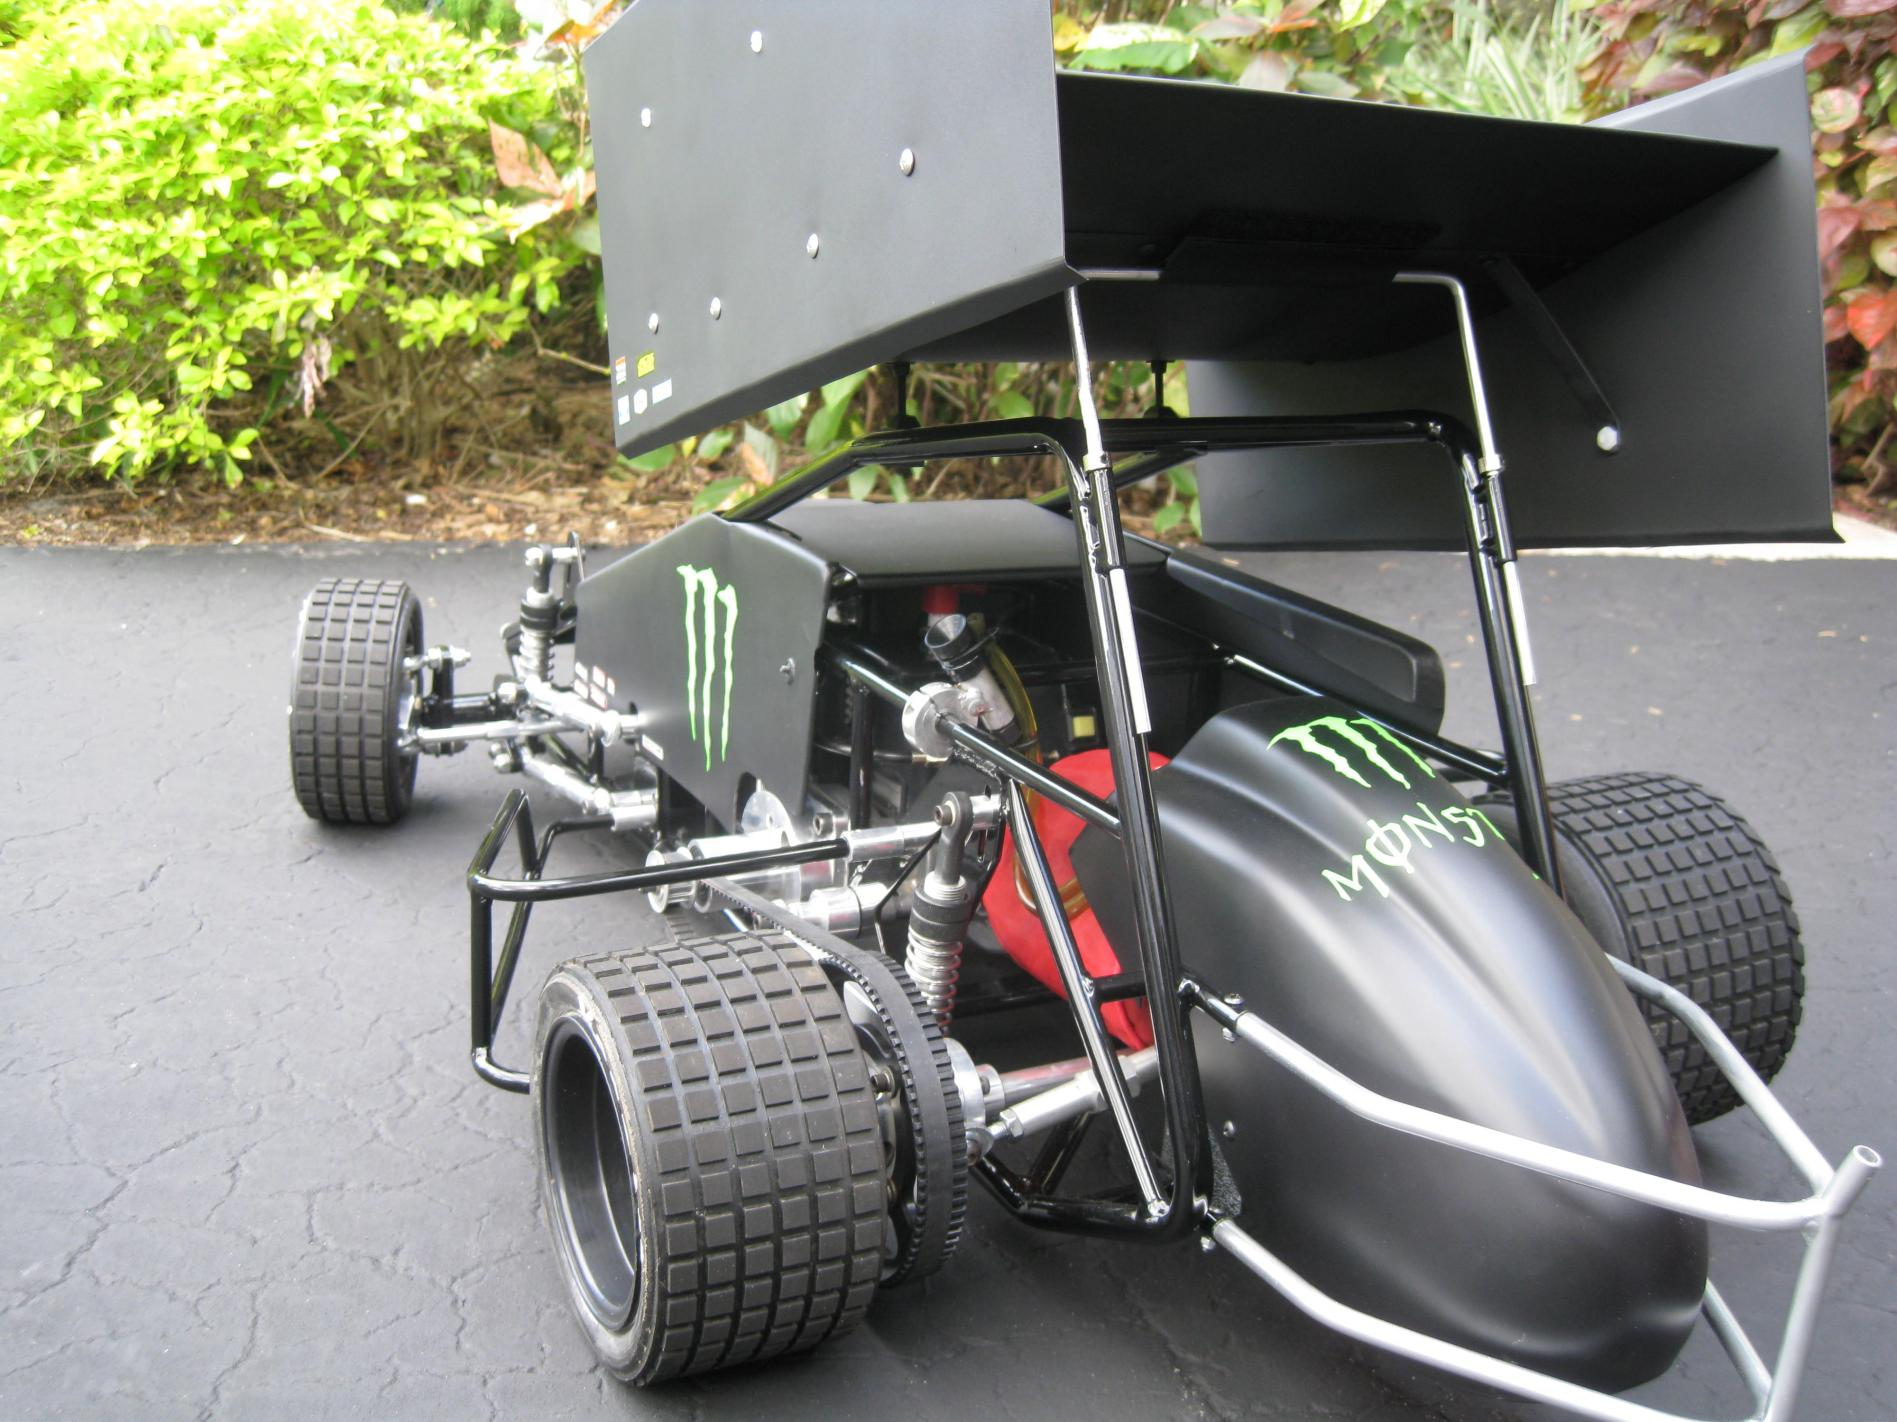 rc traxxas cars with 508858 Post Up Pics Your Sprint Cars 5 on 331983601783 together with Mens JH Design Black Monster Energy NASCAR Cup Series Official Pit Shirt additionally 508858 Post Up Pics Your Sprint Cars 5 as well Xf 51 Tamiya Acrylic Paint Khaki Drab as well Stjoehonda.